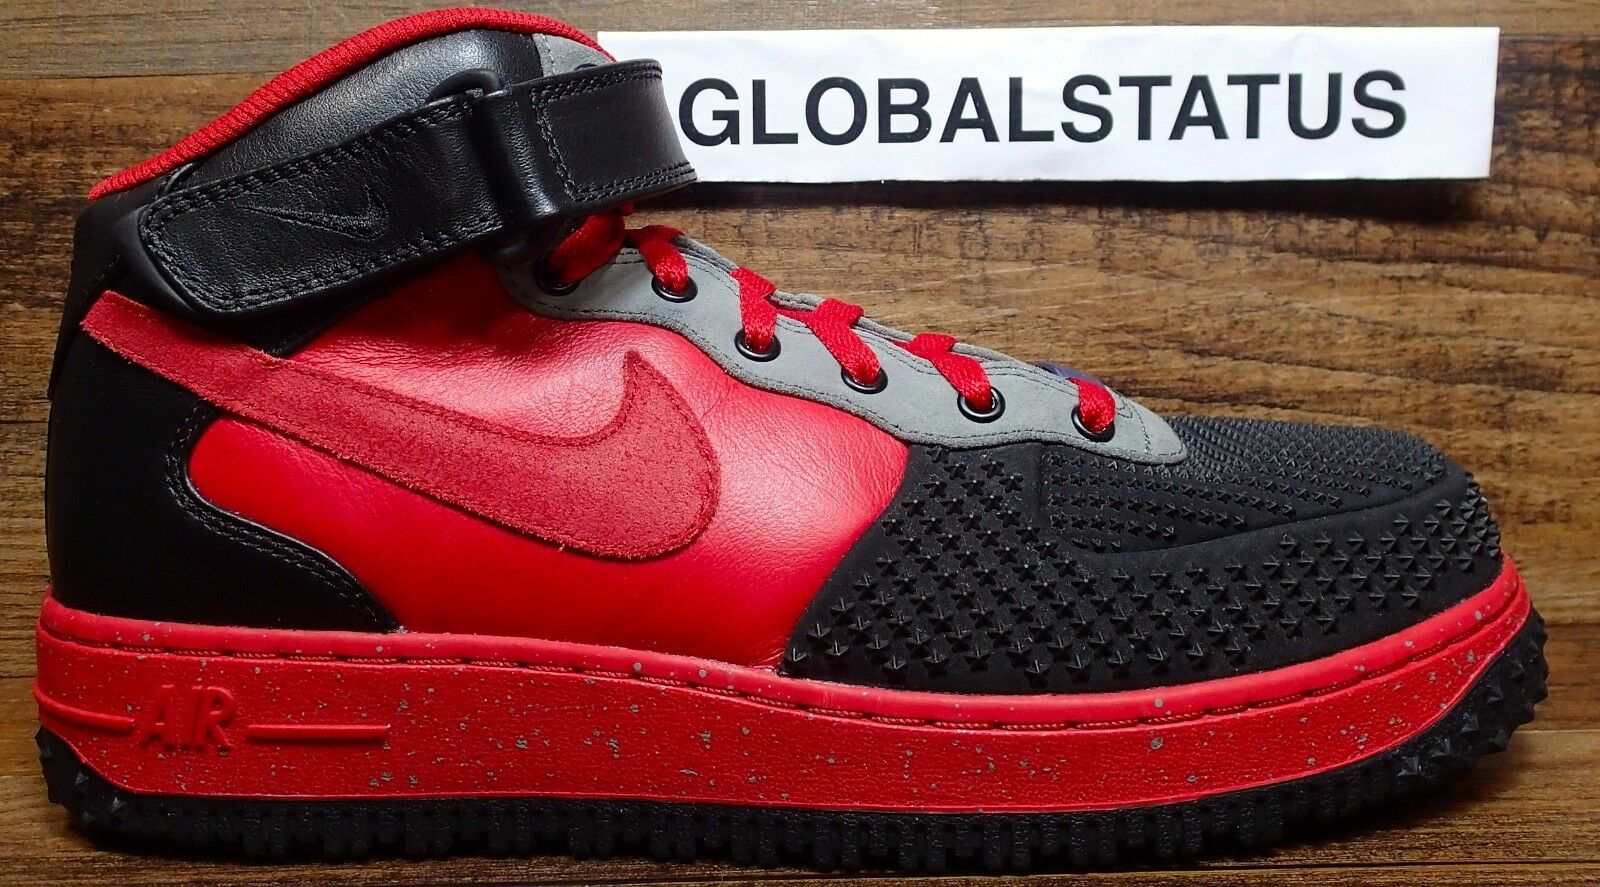 MENS NIKE ID AF1 AIR FORCE 1 MID RED BLACK GREY DUCK BOOTS 808788 996 SIZE 9.5